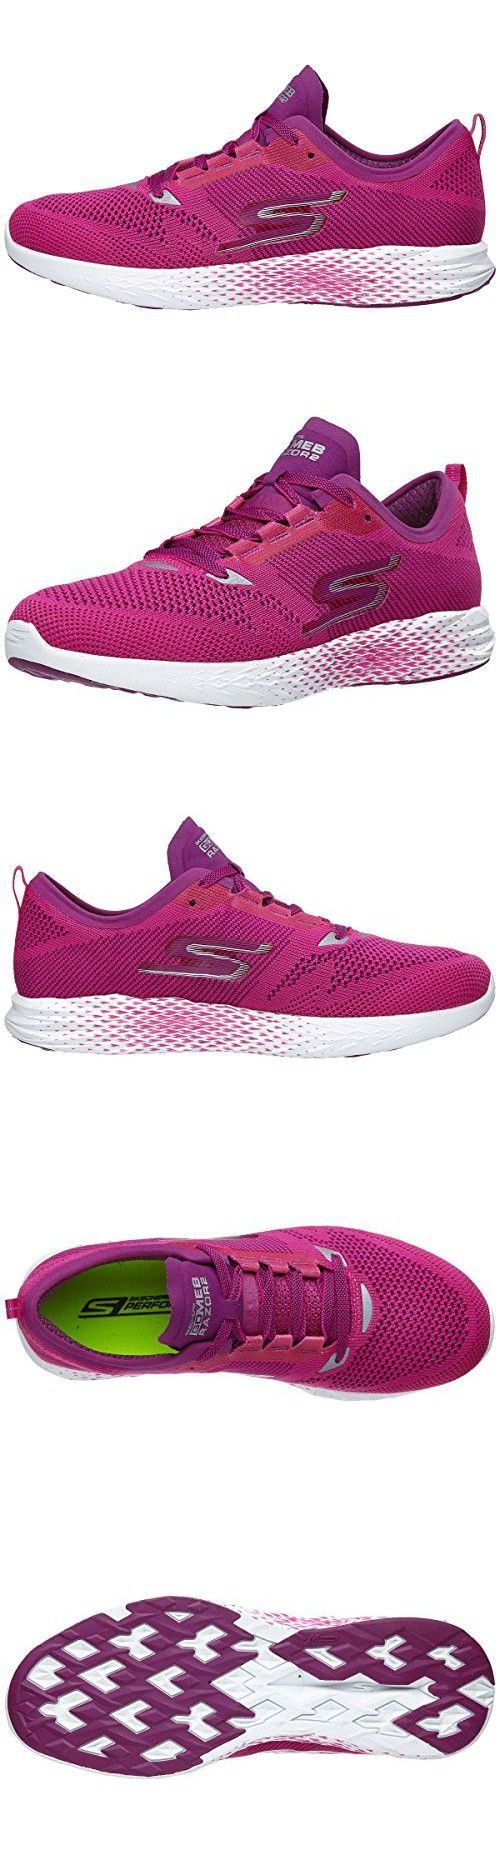 skechers running clothes